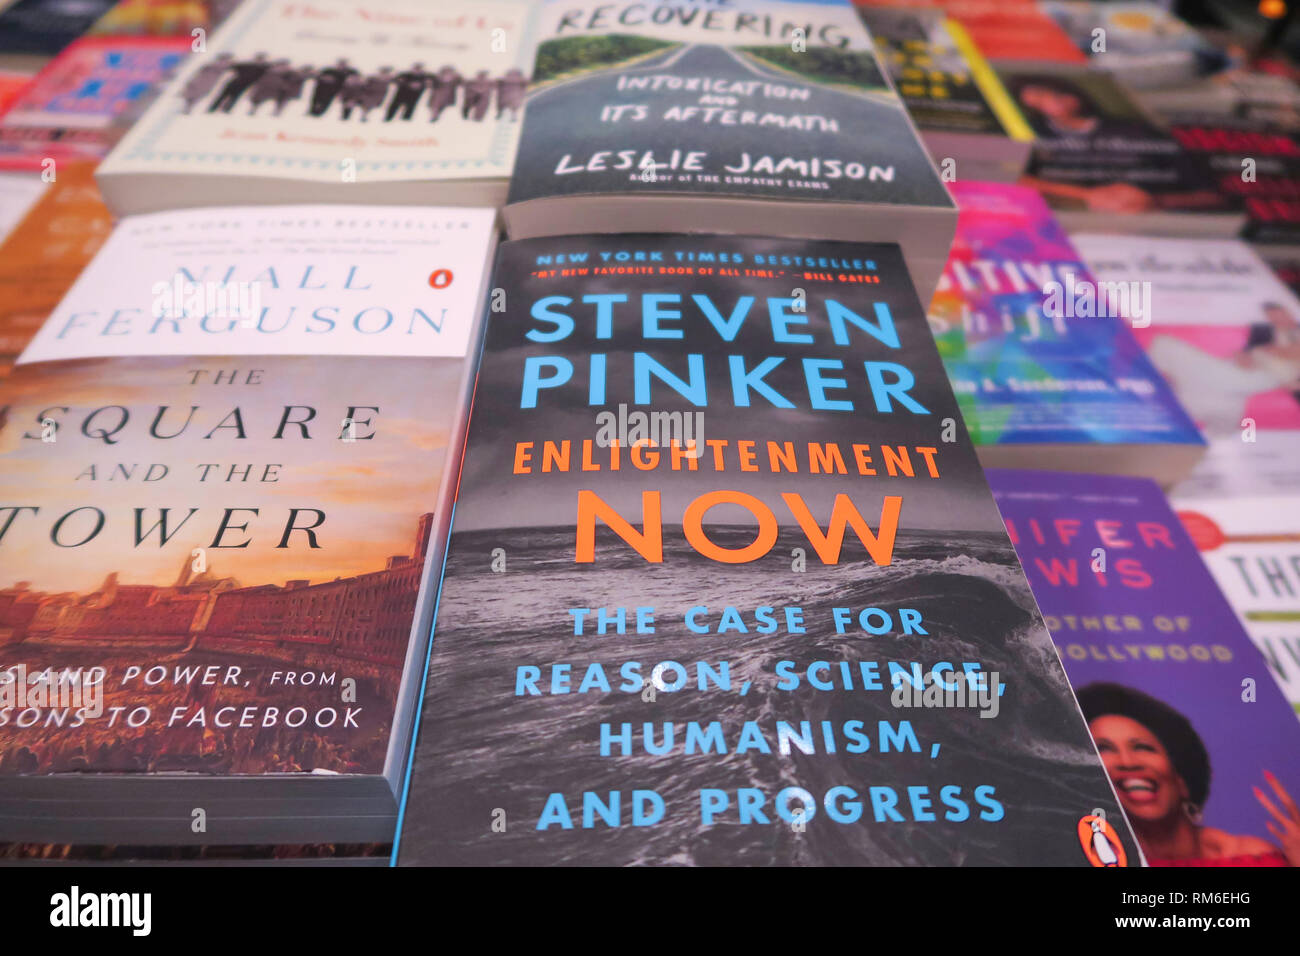 Barnes & Noble Booksellers Book Display, NYC, USA - Stock Image